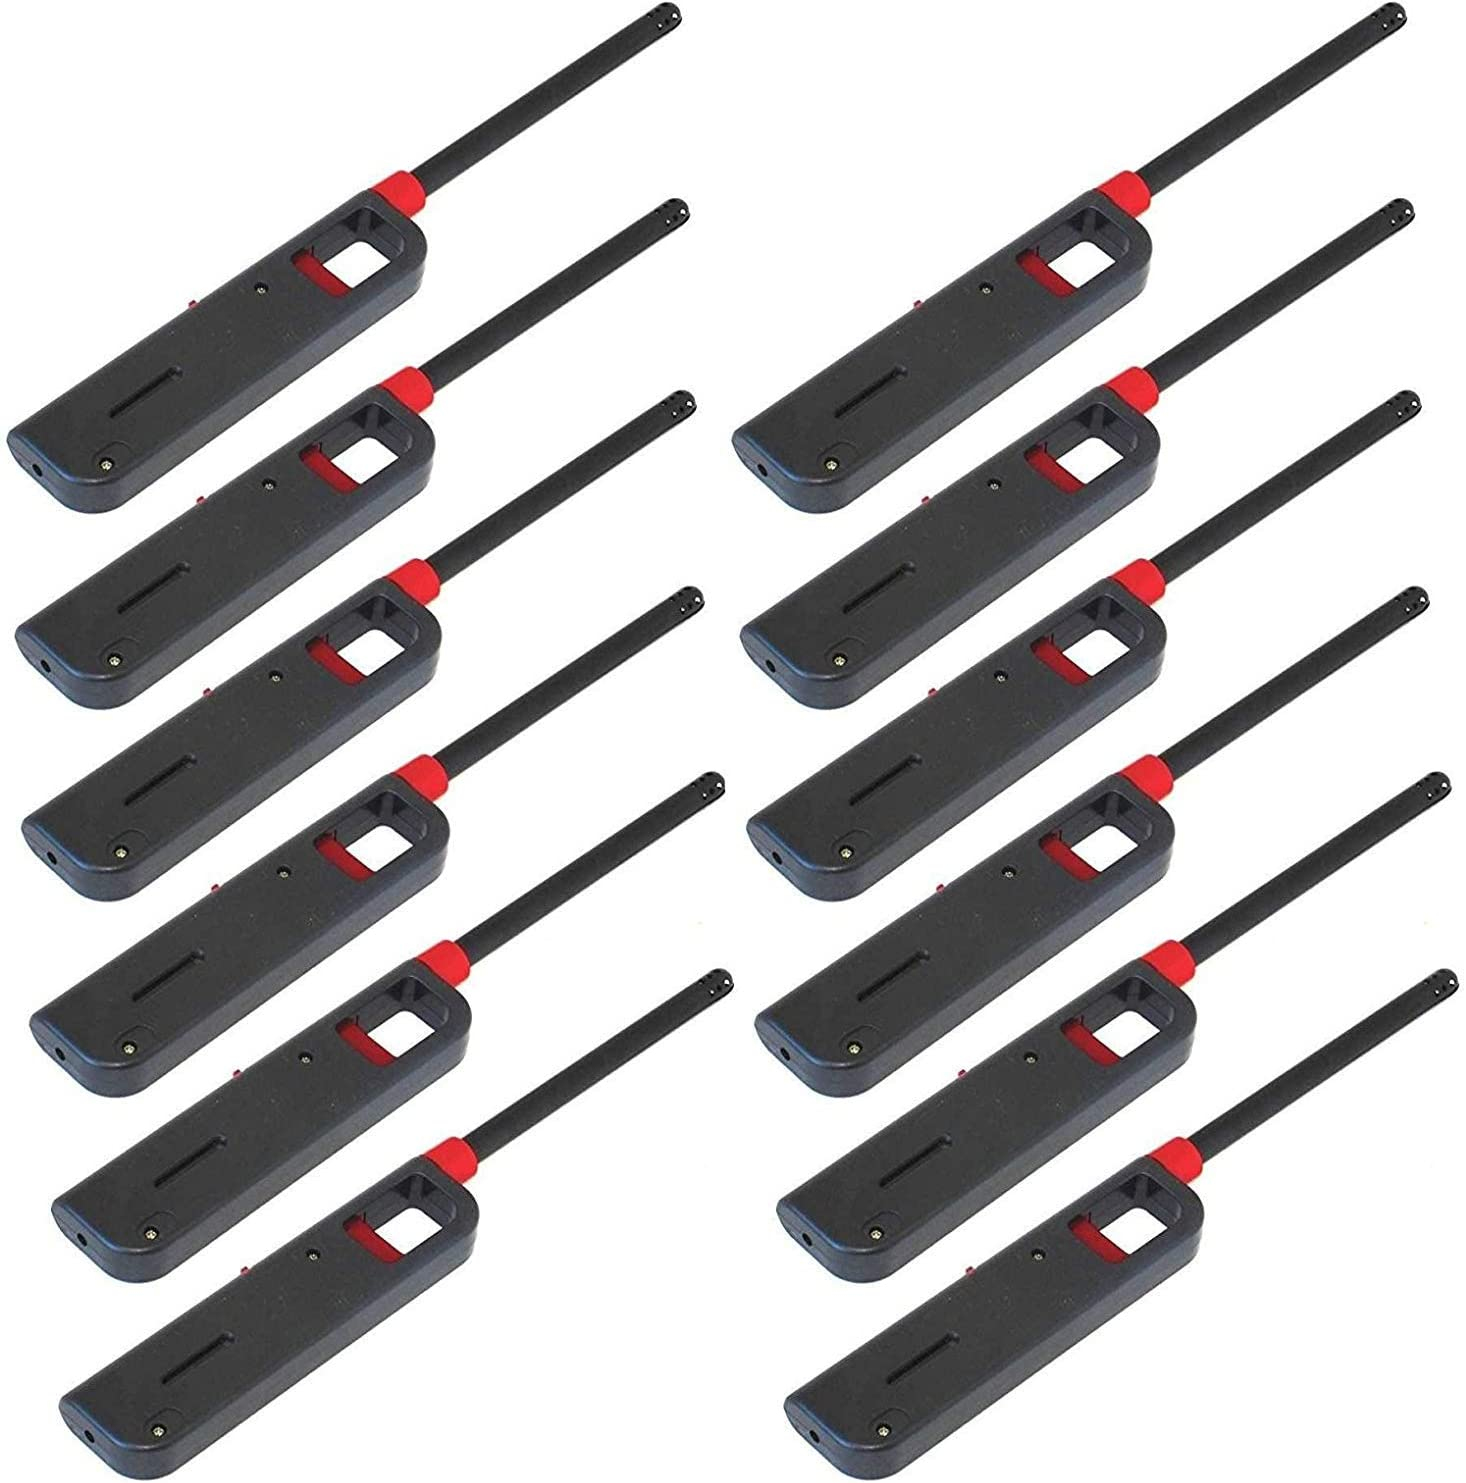 12 Pack BBQ Grill Lighter Refillable Butane Gas Candle Fireplace Kitchen Stove Long 71MYEsudCGL